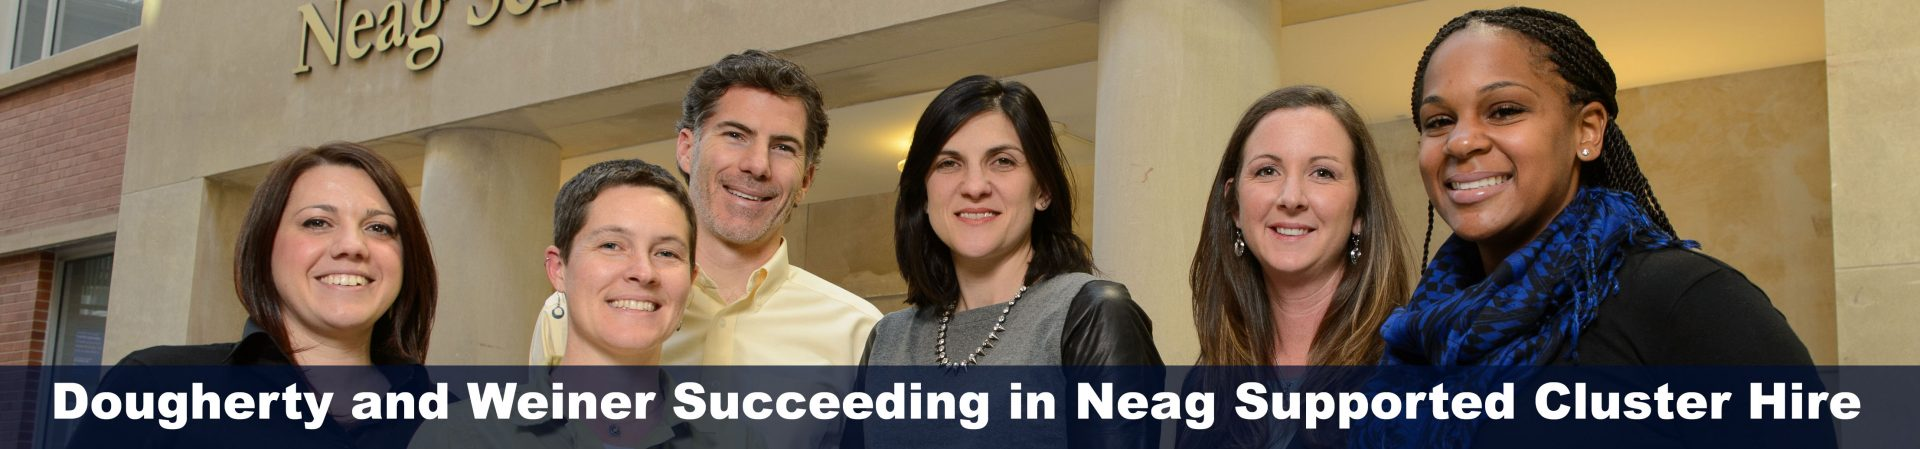 Neag Cluster Hire Group, including Shaun Dougherty and Jennie Weiner from EDLR